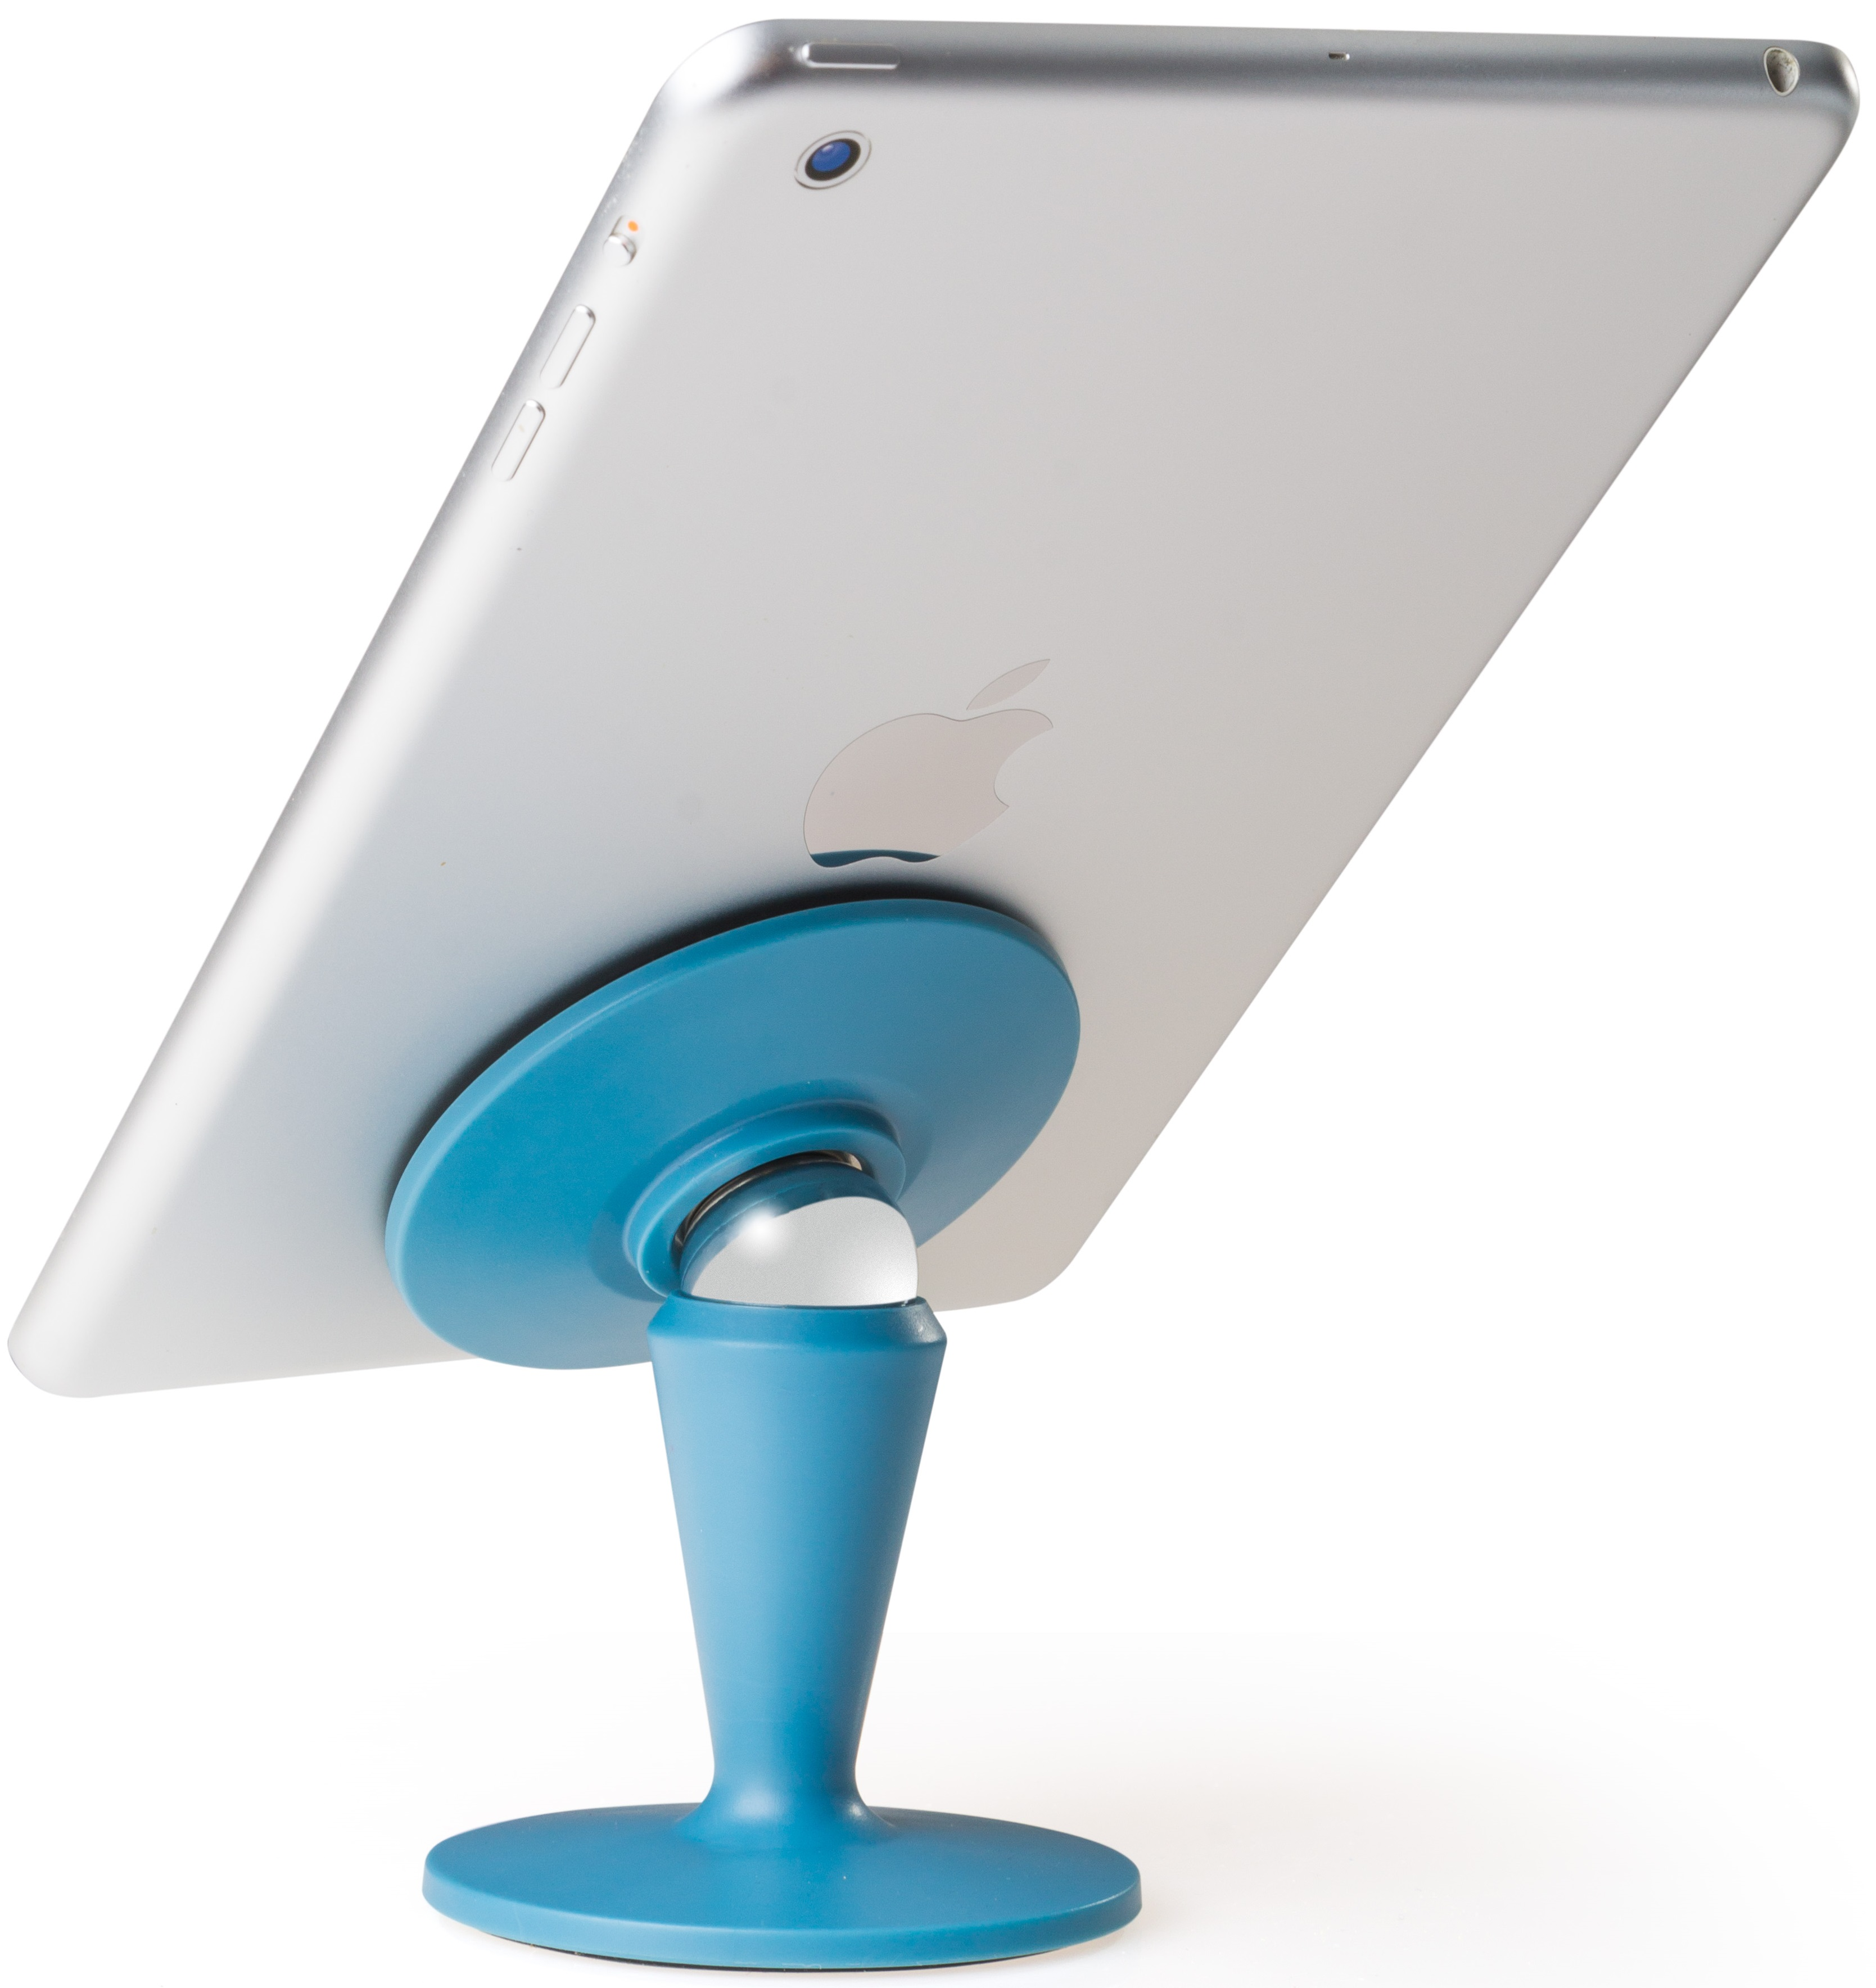 Smart Devices Organizer On Your Desk You Re Tired Of Keeping Hands Busy Juggling Phone Calls While Need To Simultaneously Be Taking Care